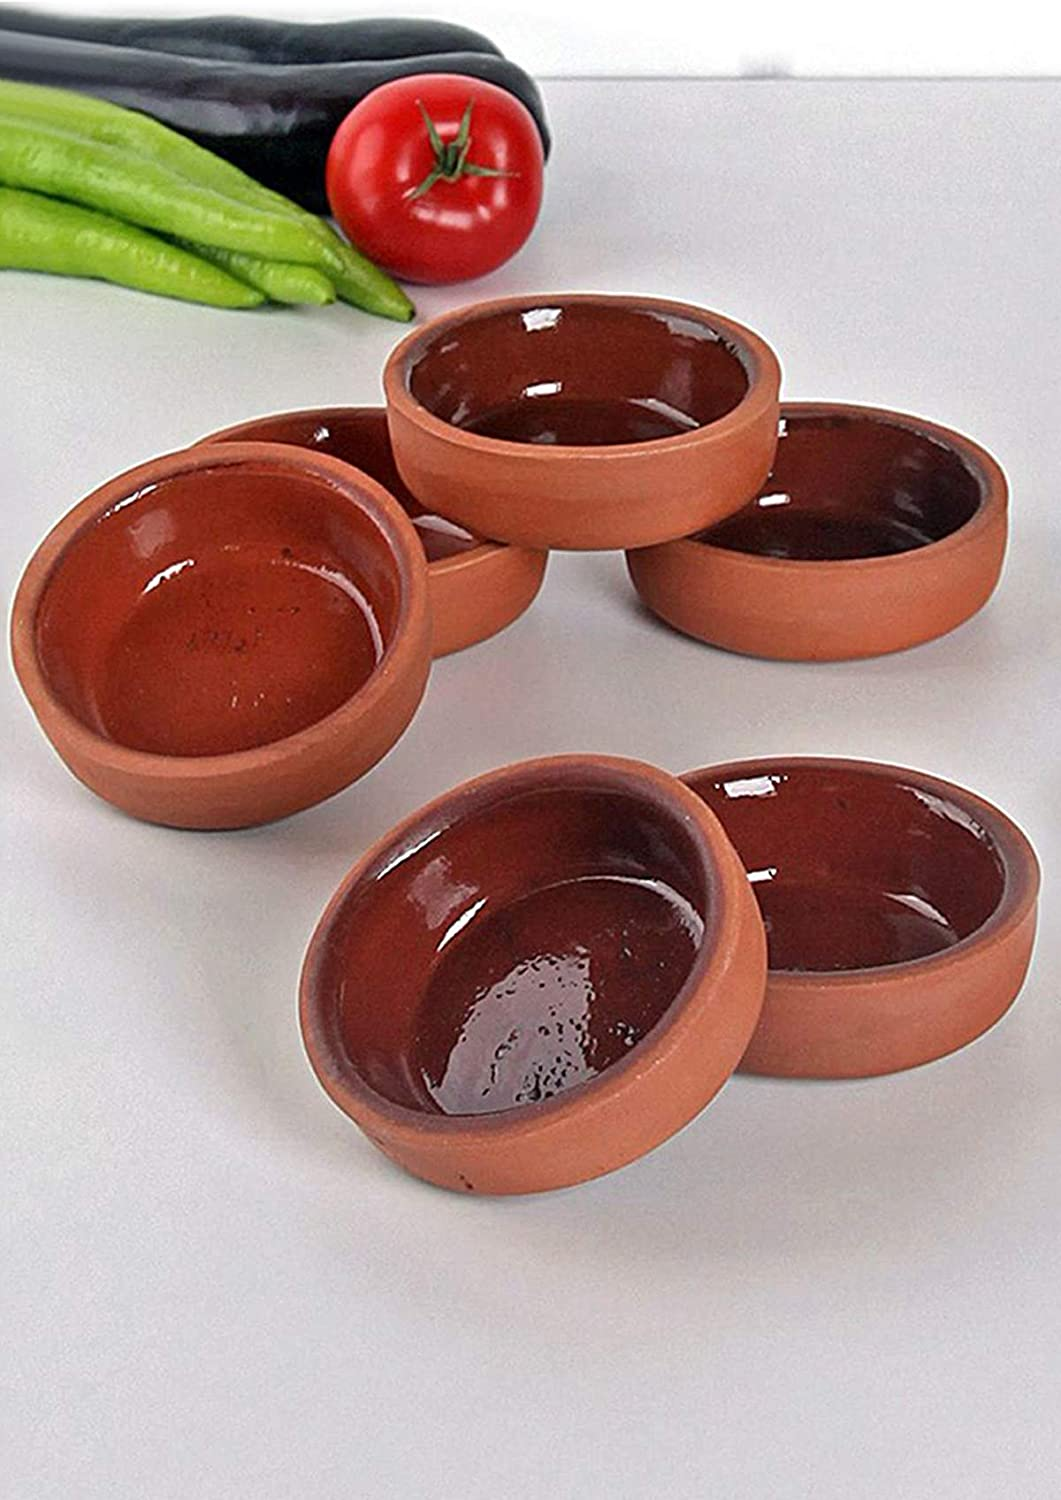 BAYKUL Handmade Clay Pot for Cooking, Pinch Bowls Set of 6, Dinnerware Terracota Bowl Finger Small Food Serving 4-Inches, Turkish Mexican Plates, Decorative Soy Sauce Dish (Set of 6)